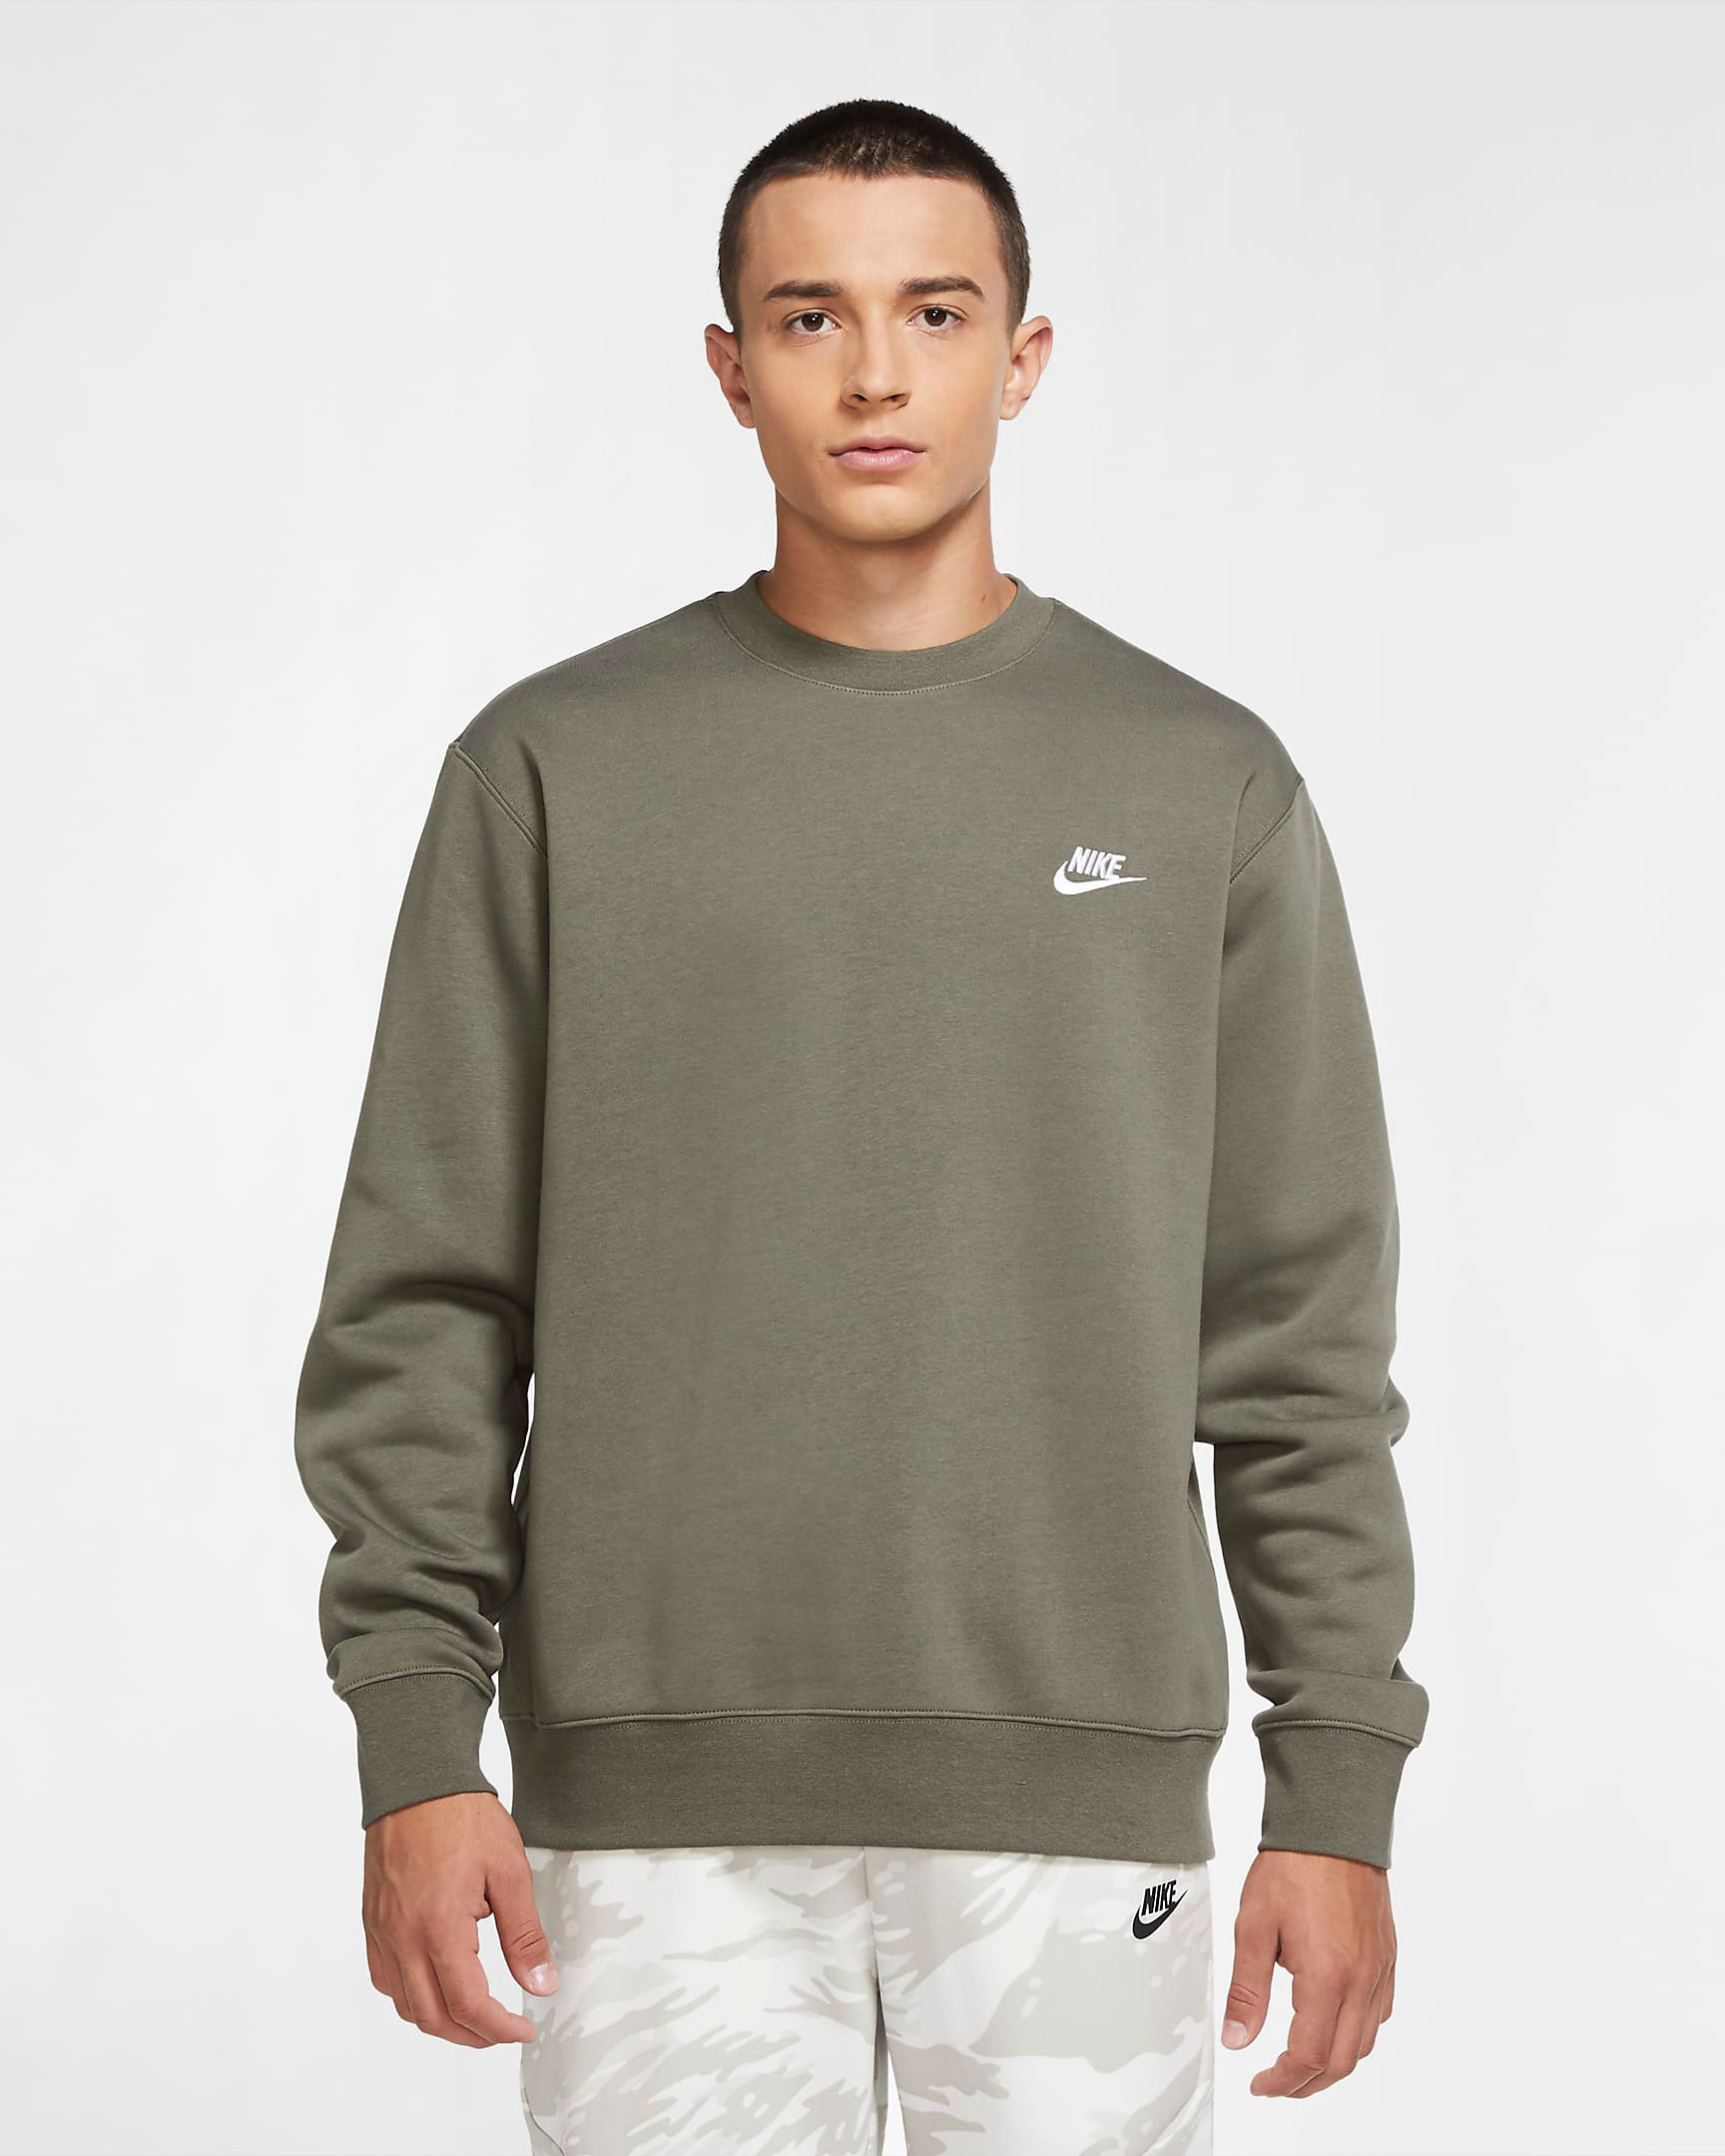 nike-club-fleece-sweatshirt-twilight-marsh-olive-green